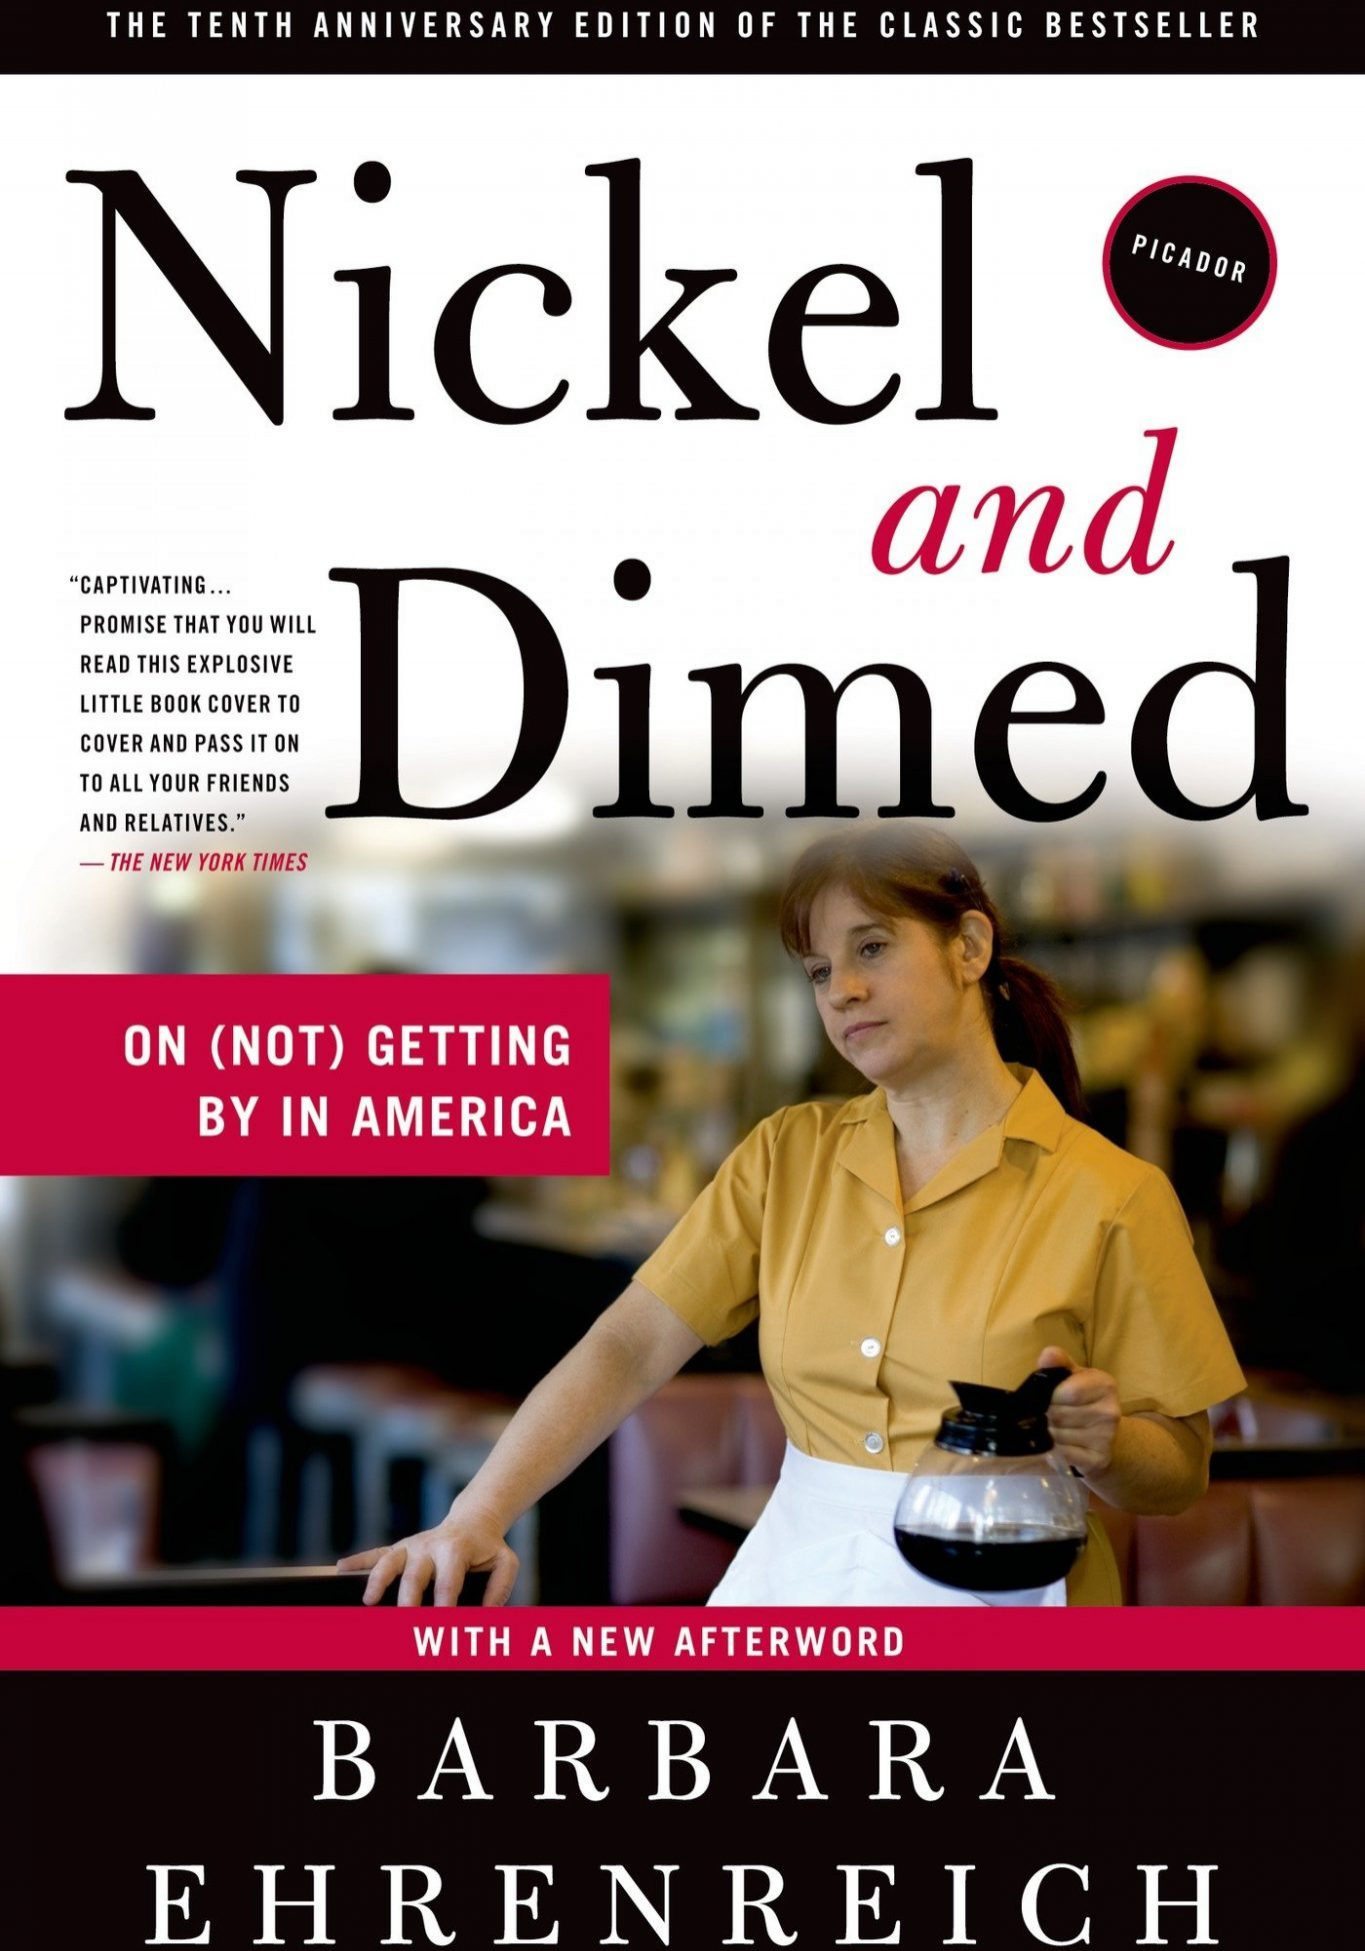 a discussion of the issue of poverty in the book nickel and dimed Nickel and dimed: on (not) getting by in america barbara ehrenreich, 2001 henry holt & company 240 pp isbn-13: 9780805088380 summary millions of americans work for poverty-level wages, and one day barbara ehrenreich decided to join them she was inspired in part by the rhetoric surrounding welfare reform, which promised that any job.